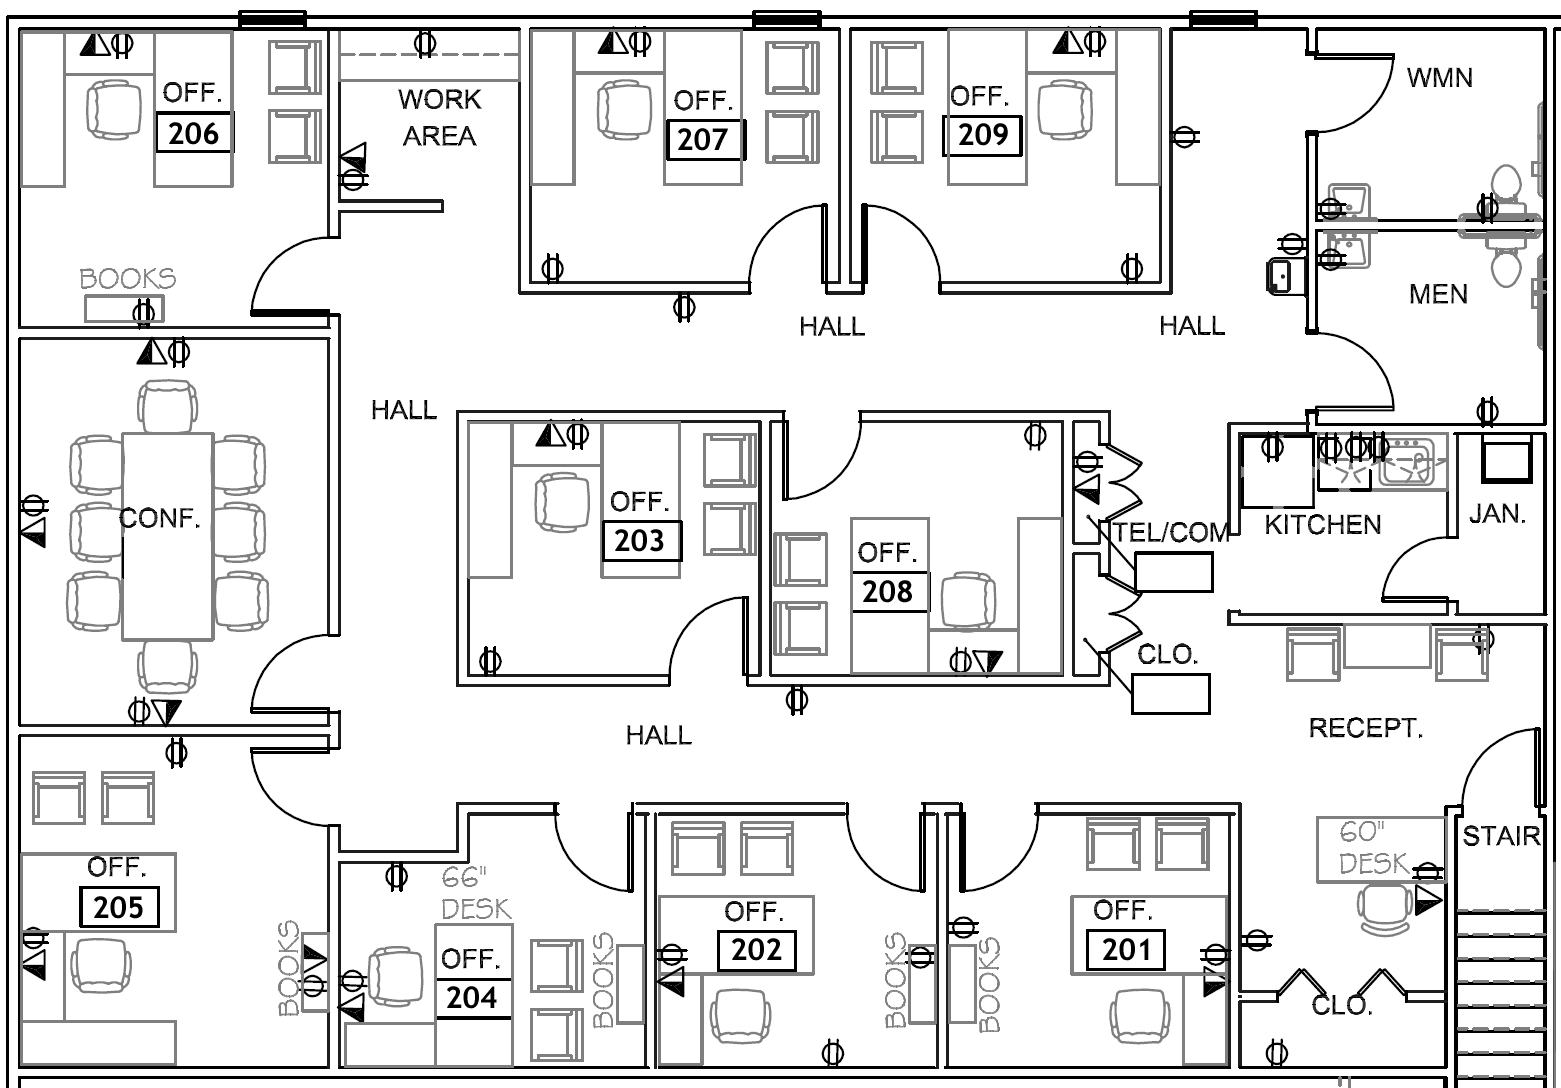 office layouts map of timezones in united states office furniture